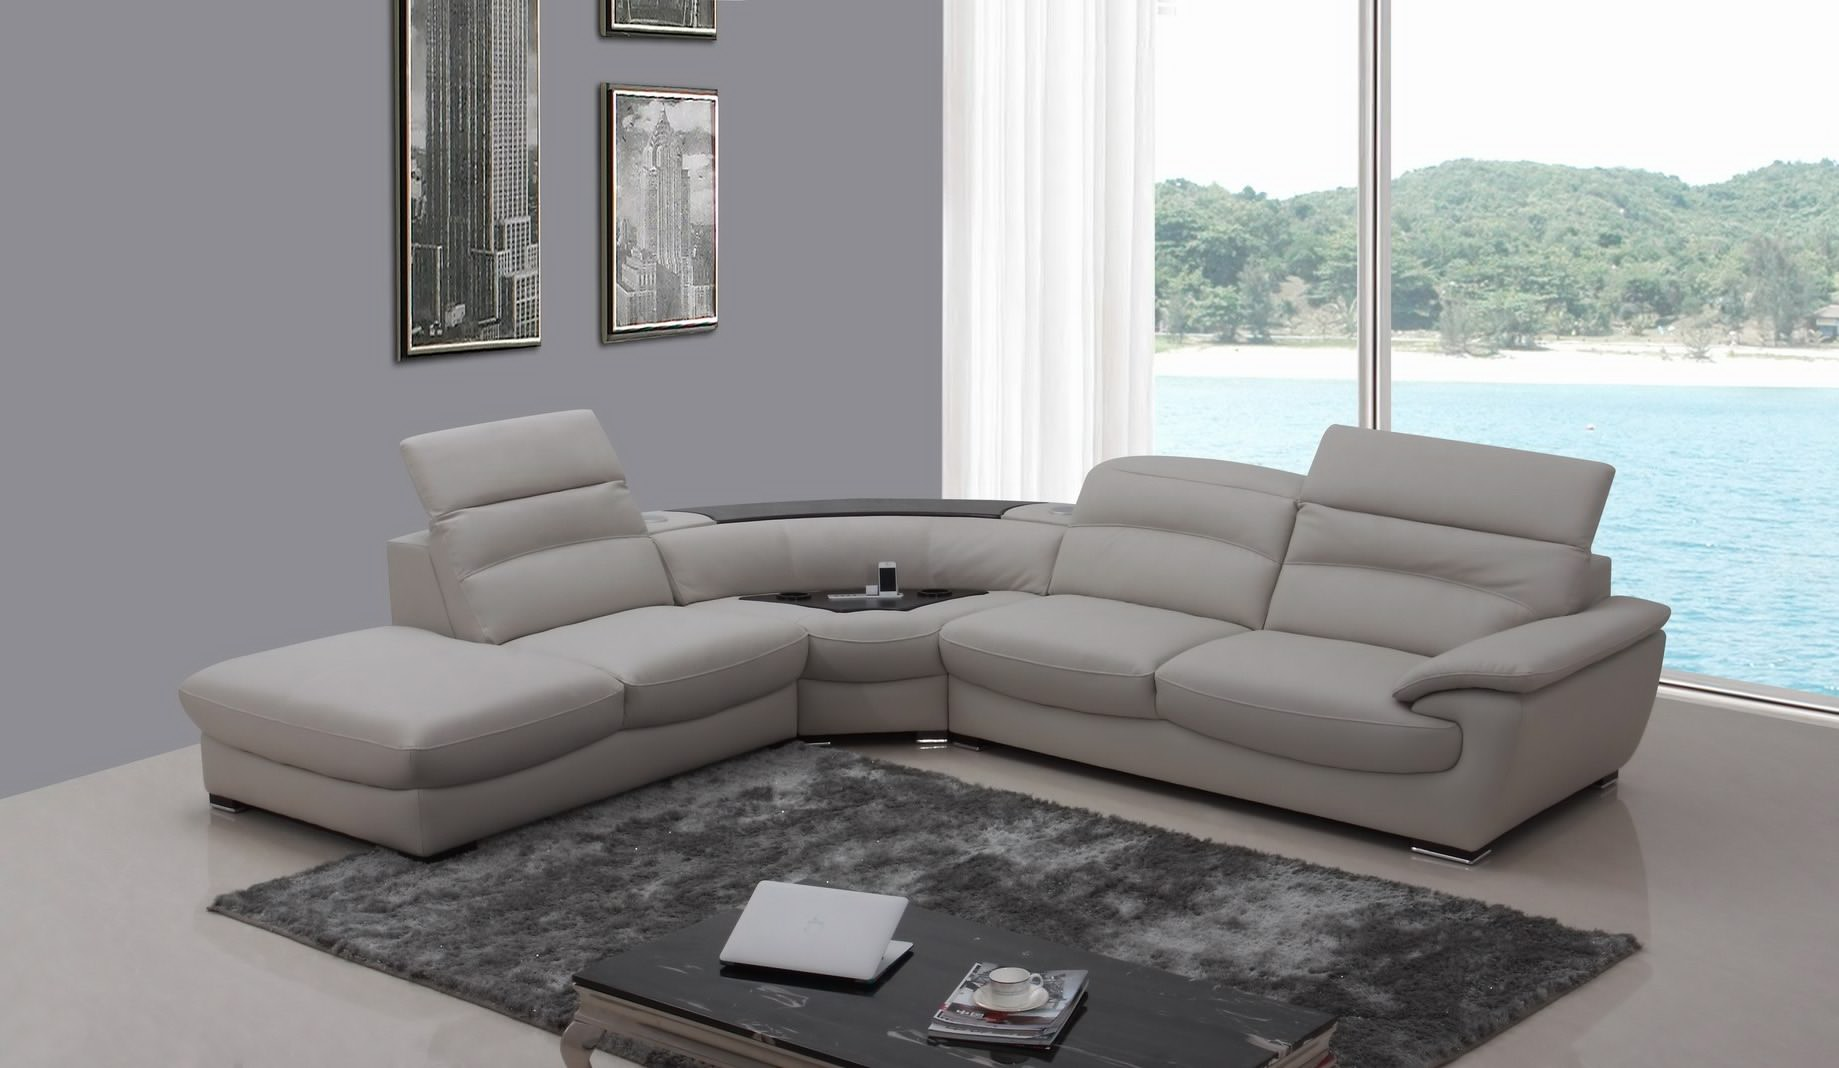 Costco Leather Sectional | Double Chaise Sectional | Pulaski Couch